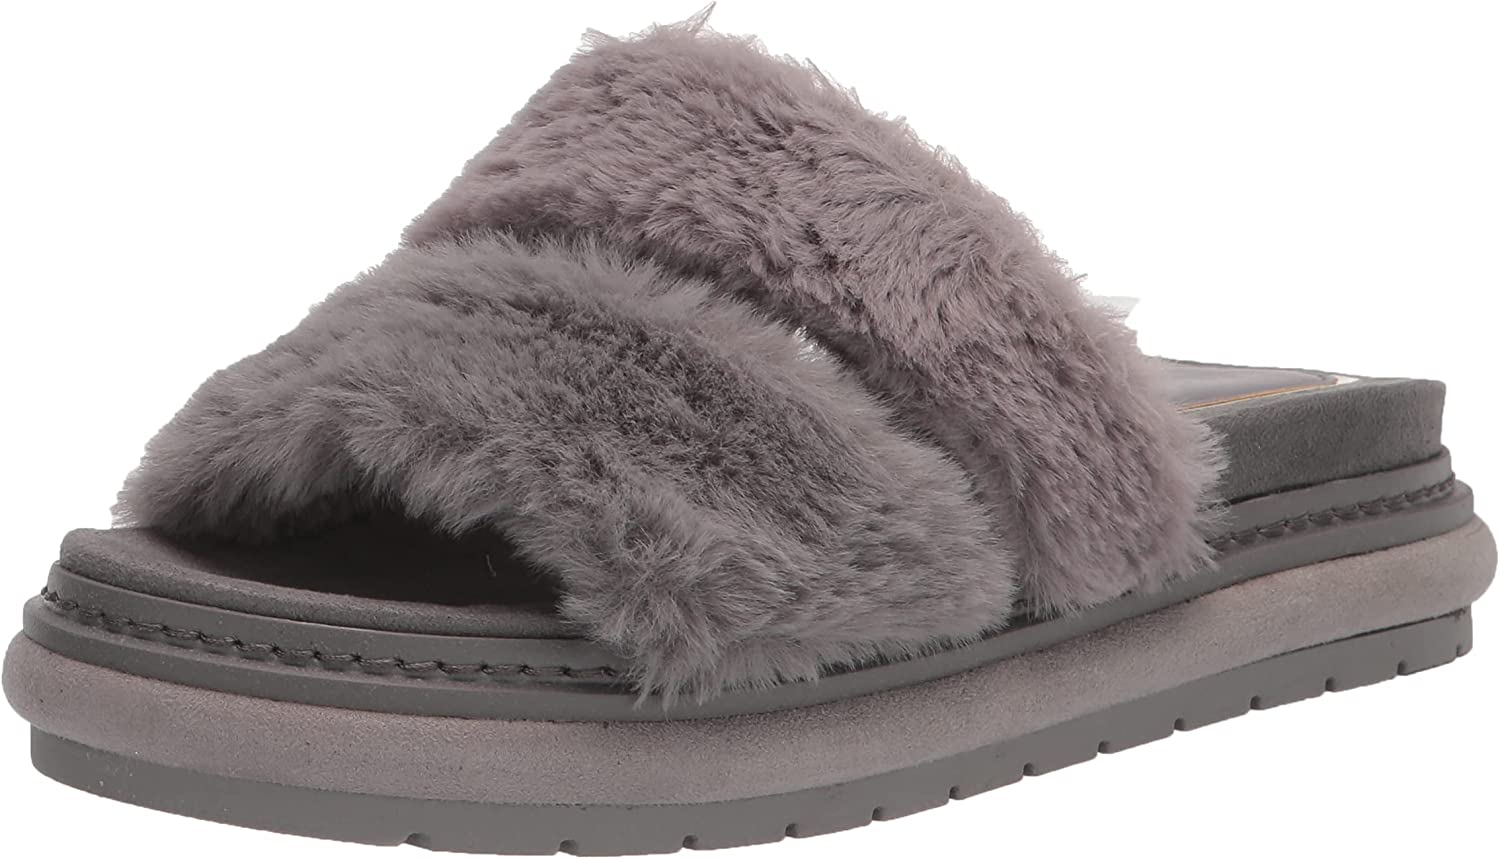 Kenneth Time sale Cole New York Women's Flat Cozy OFFicial site Laney Sandal